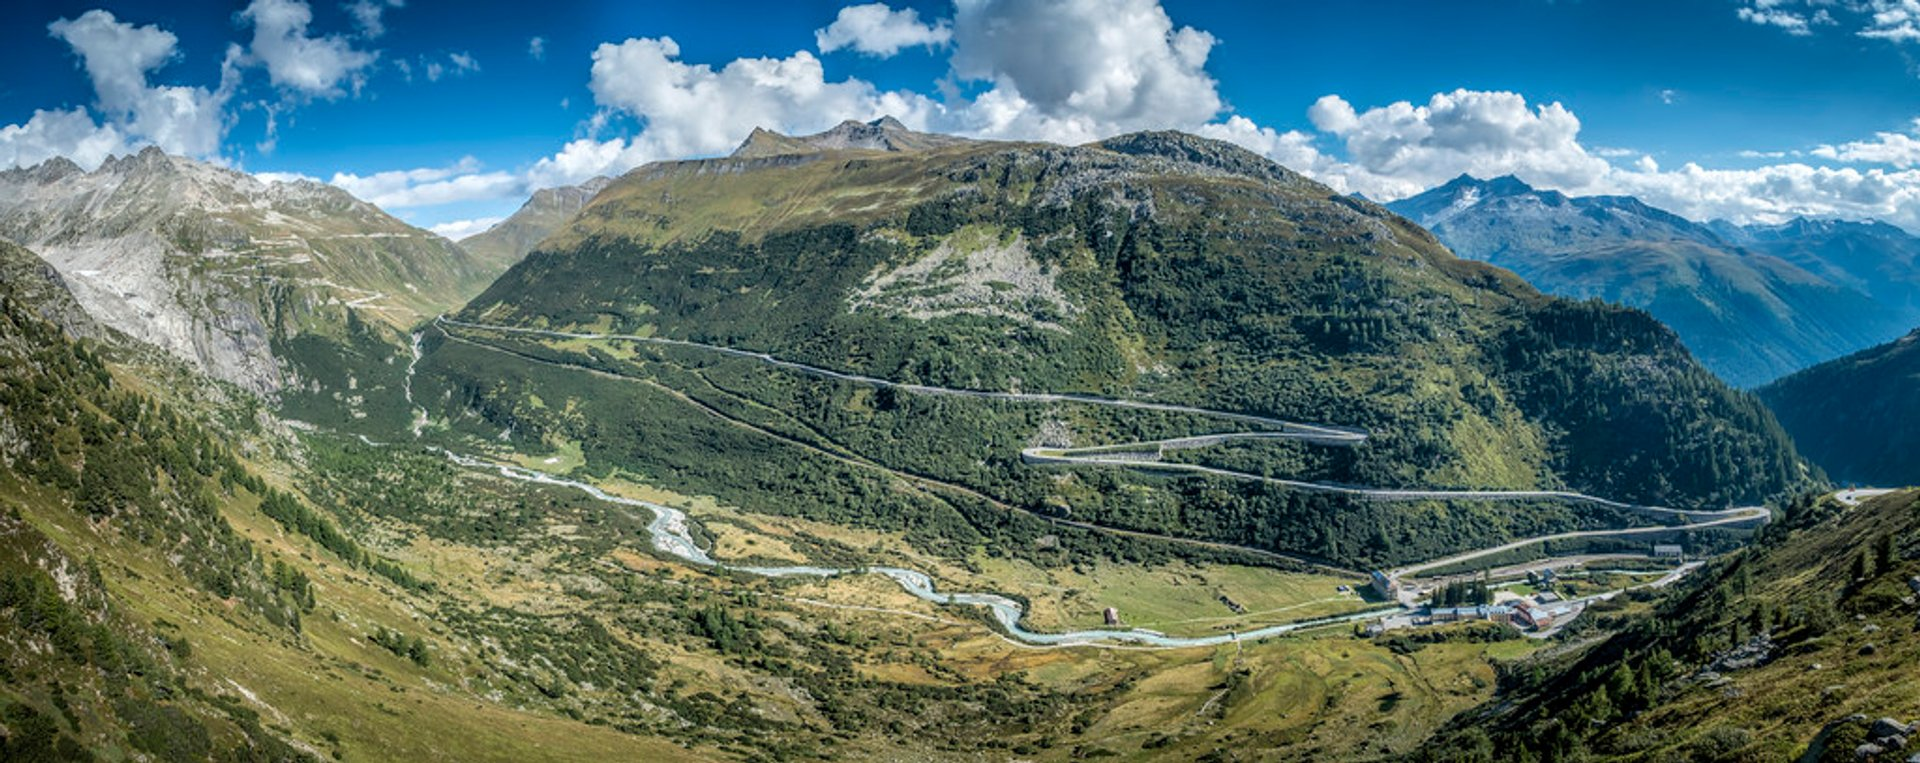 Driving over the Grimsel Pass, with the Furka Pass in the background 2020